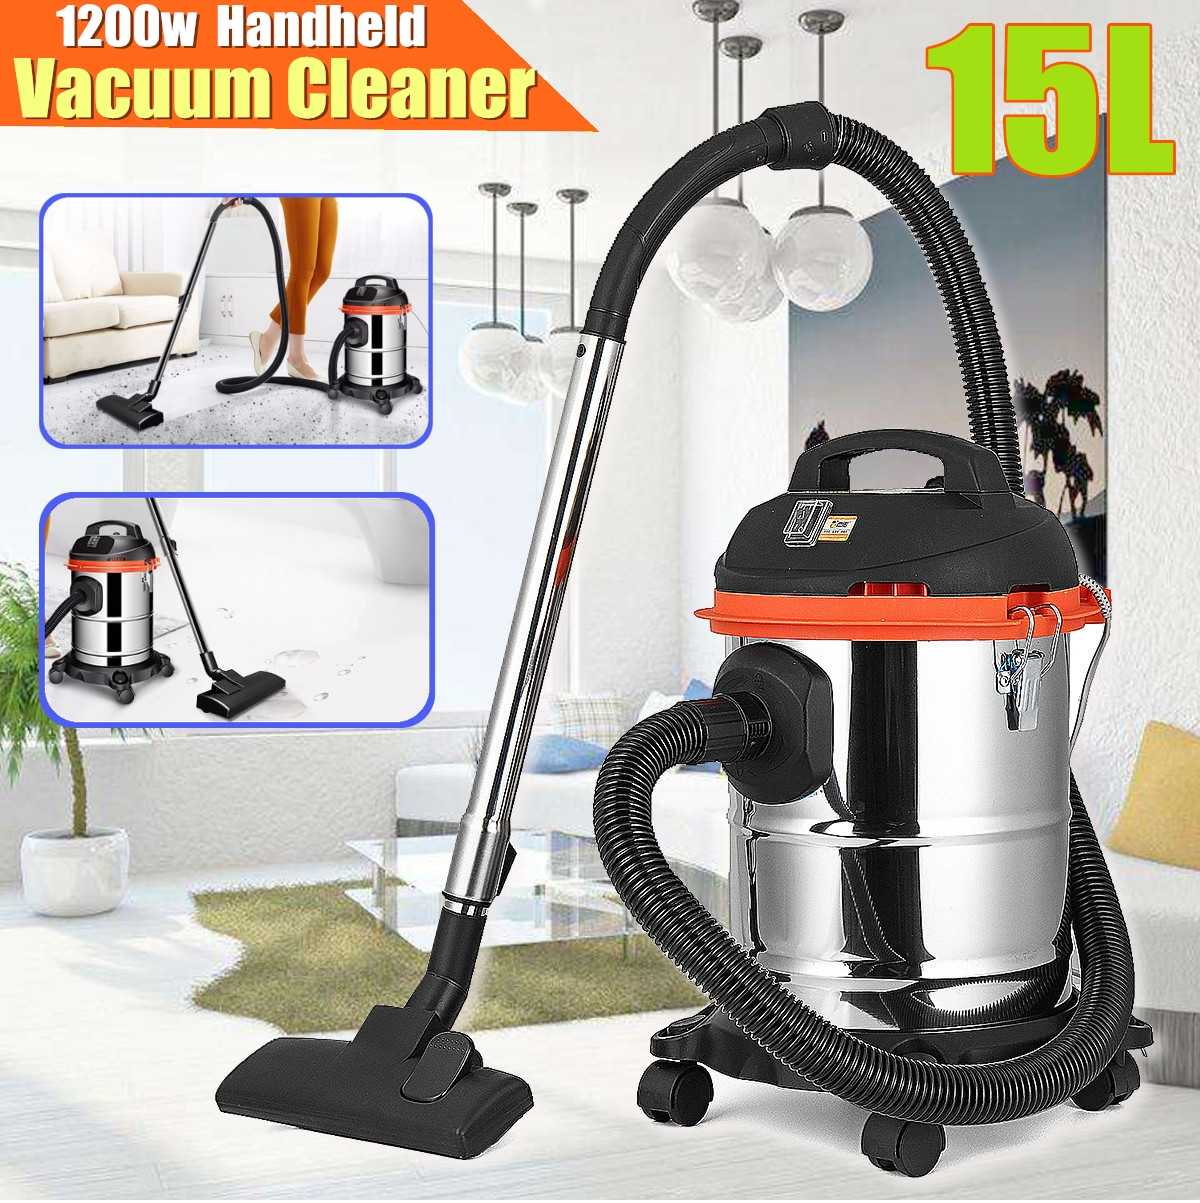 Stainless Steel Smart Canister Vacuum Cleaner Handheld Floor Dust Sweeping Cleaning Tools Home Wet Dry Cleaning Machine Cleaner